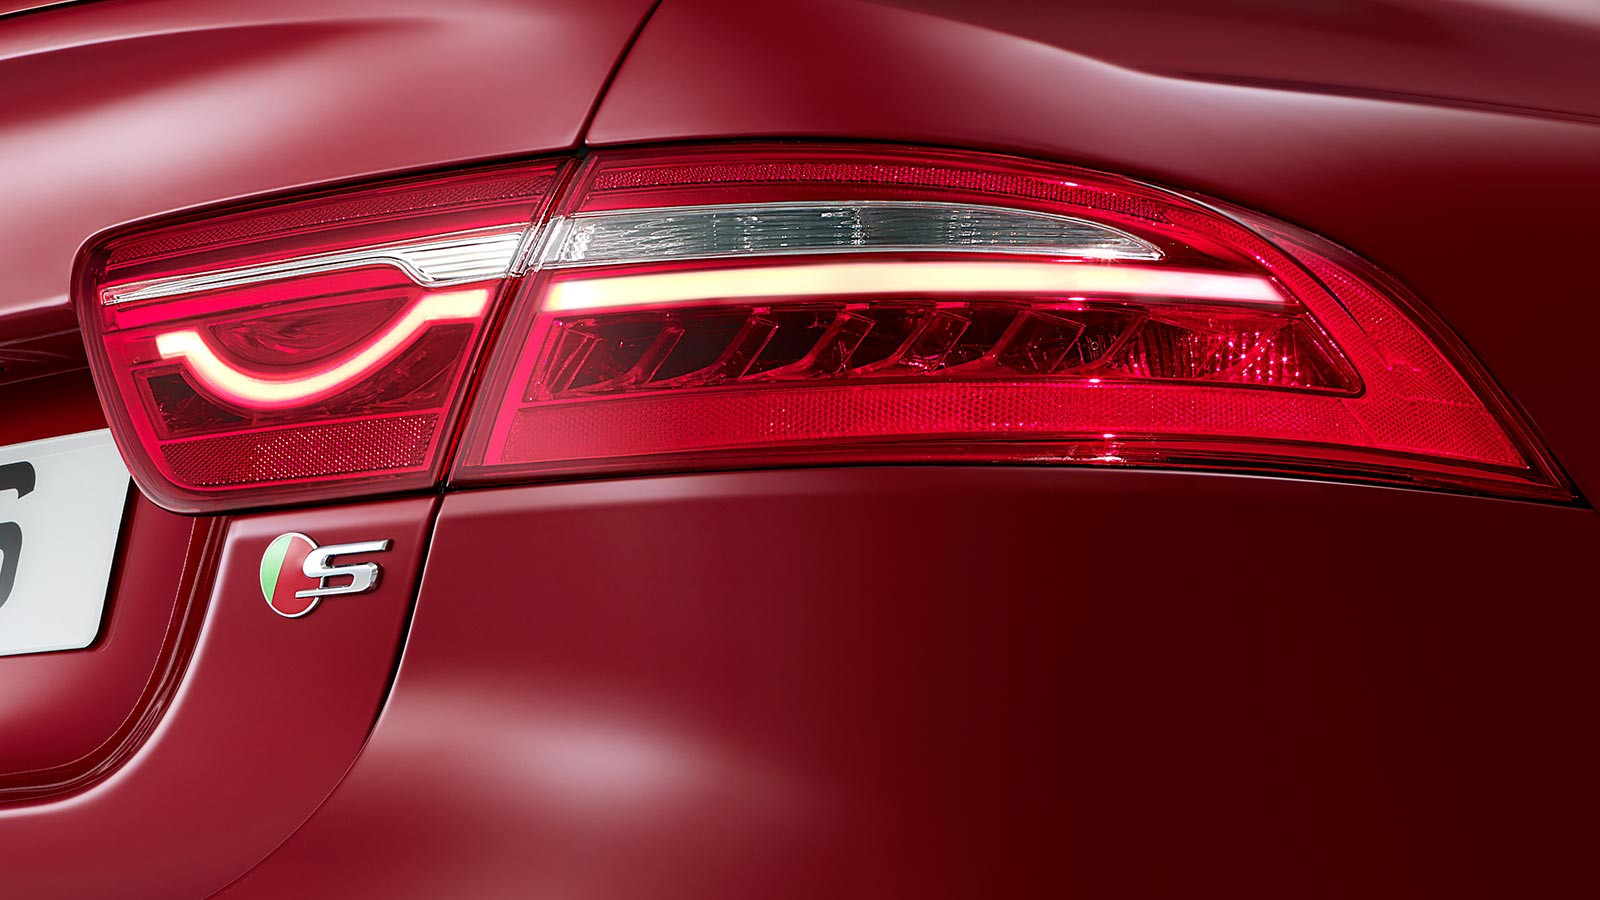 Jaguar XE S tail lights.